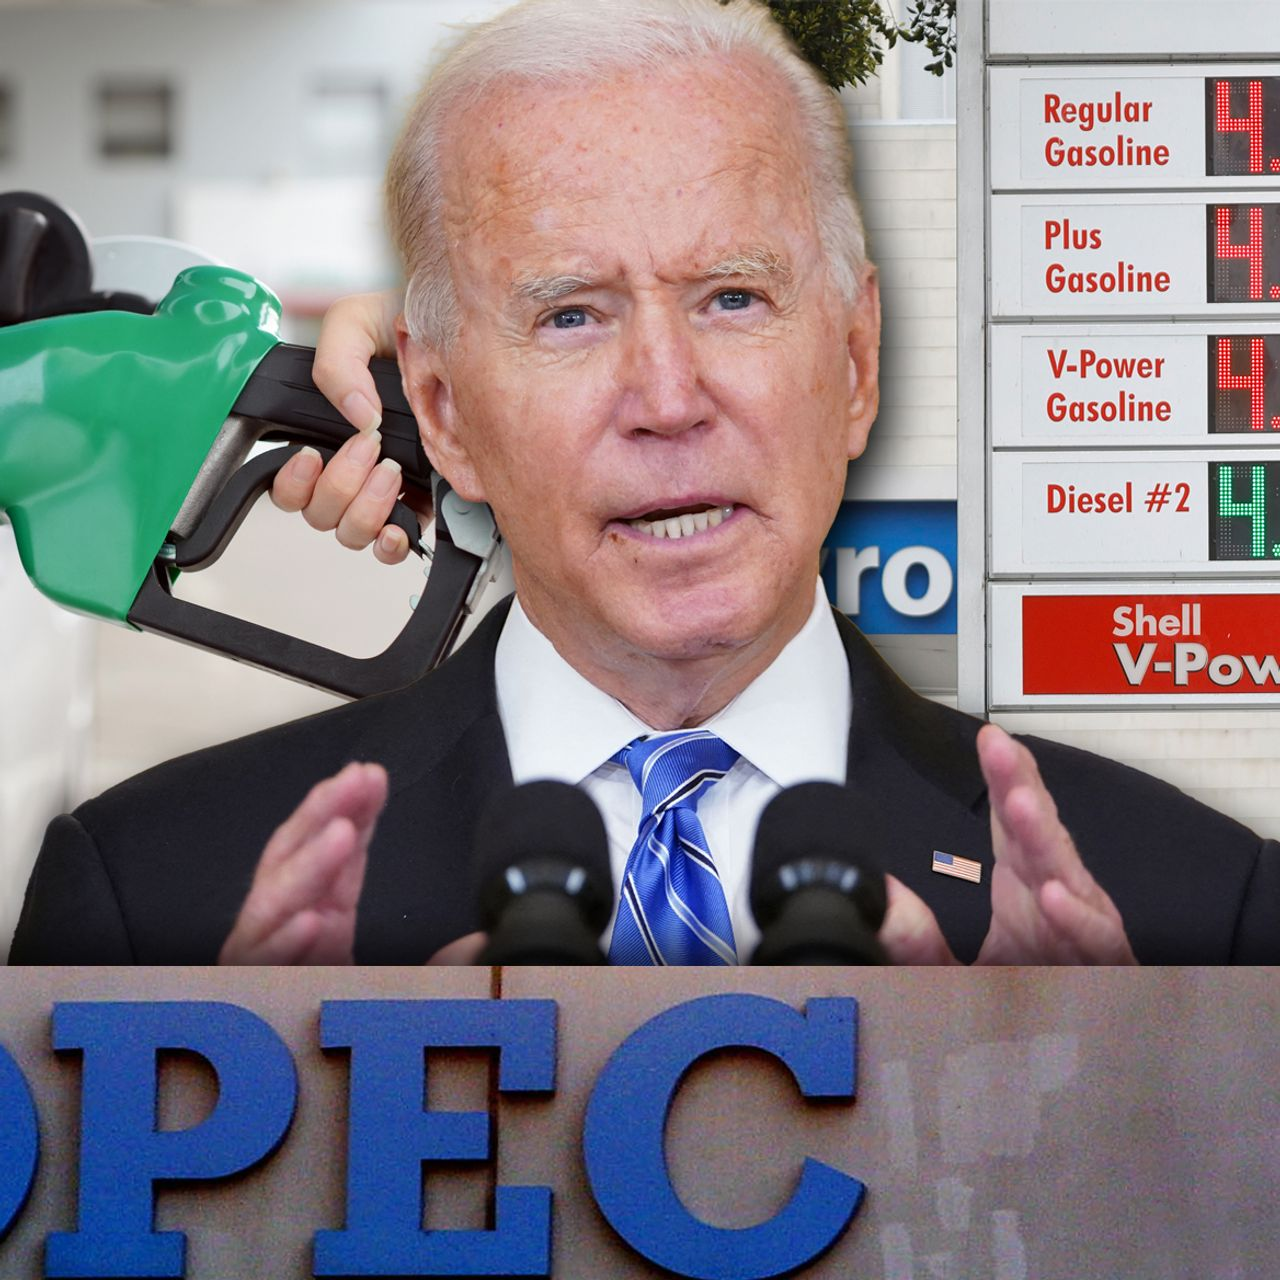 Biden says OPEC must raise oil output to 'lower prices for consumers' -  MarketWatch